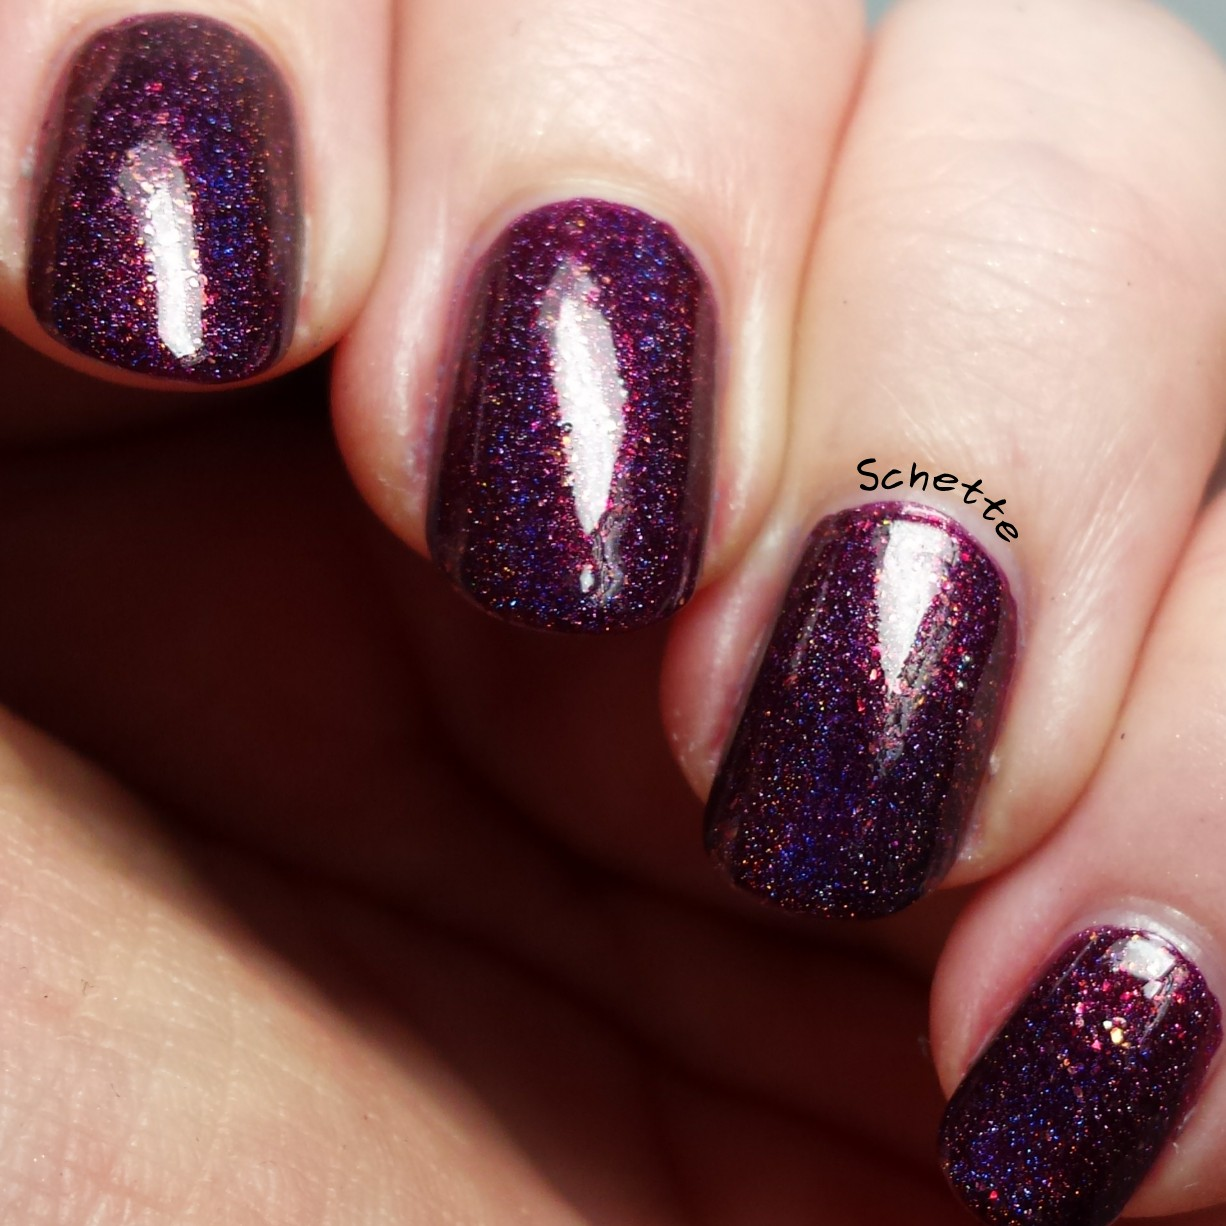 Lilypad Lacquer - Life on the dark side